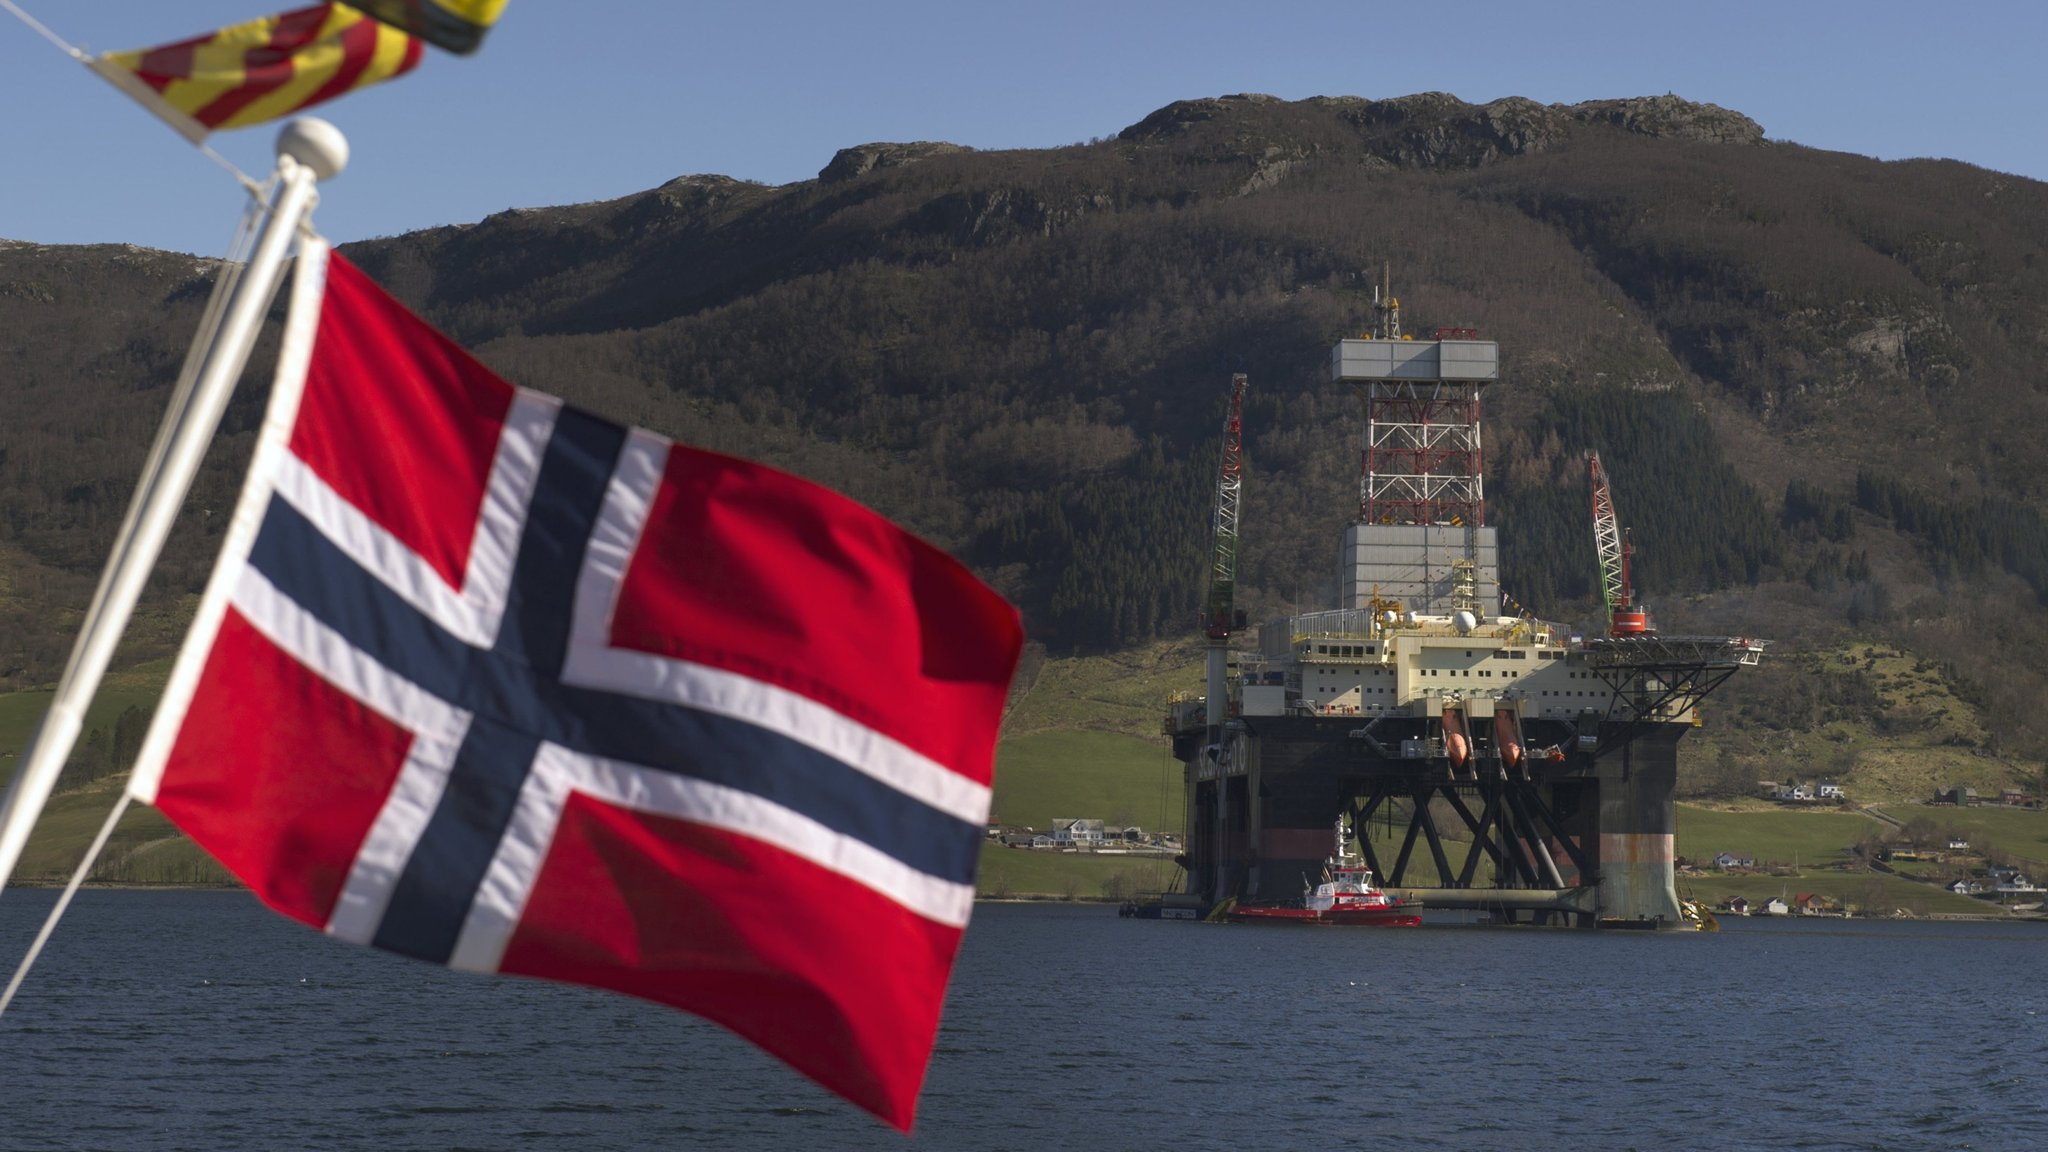 AGR includes natural resource rents such as those deposited in Norway's $1tn oil fund